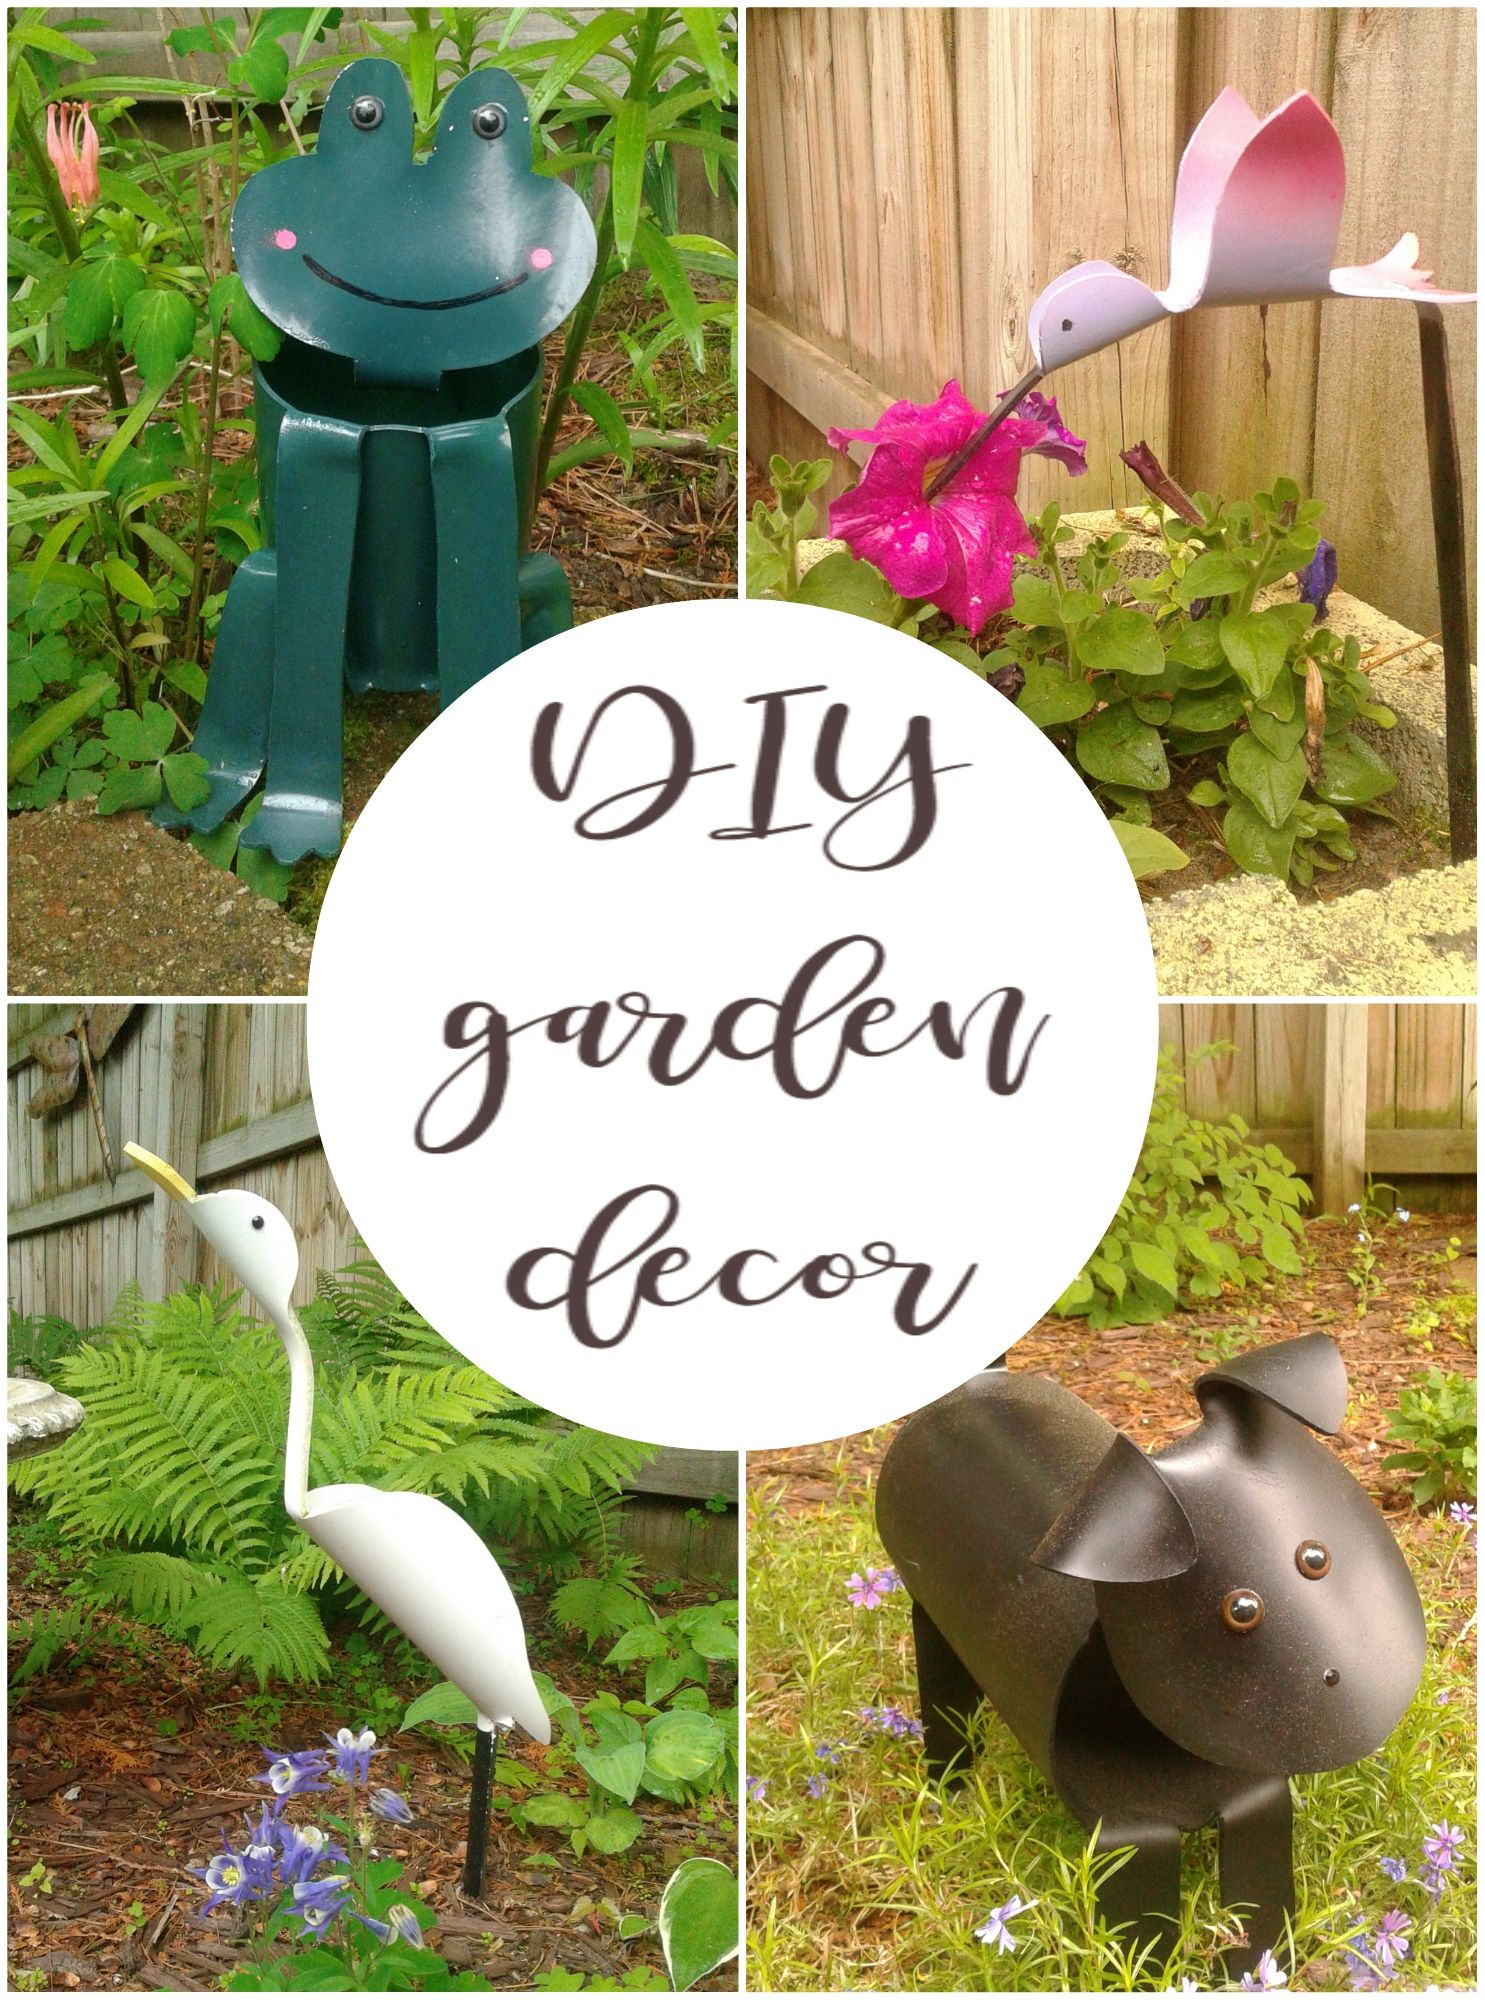 Add Some Fun To Your Garden With These Adorable And